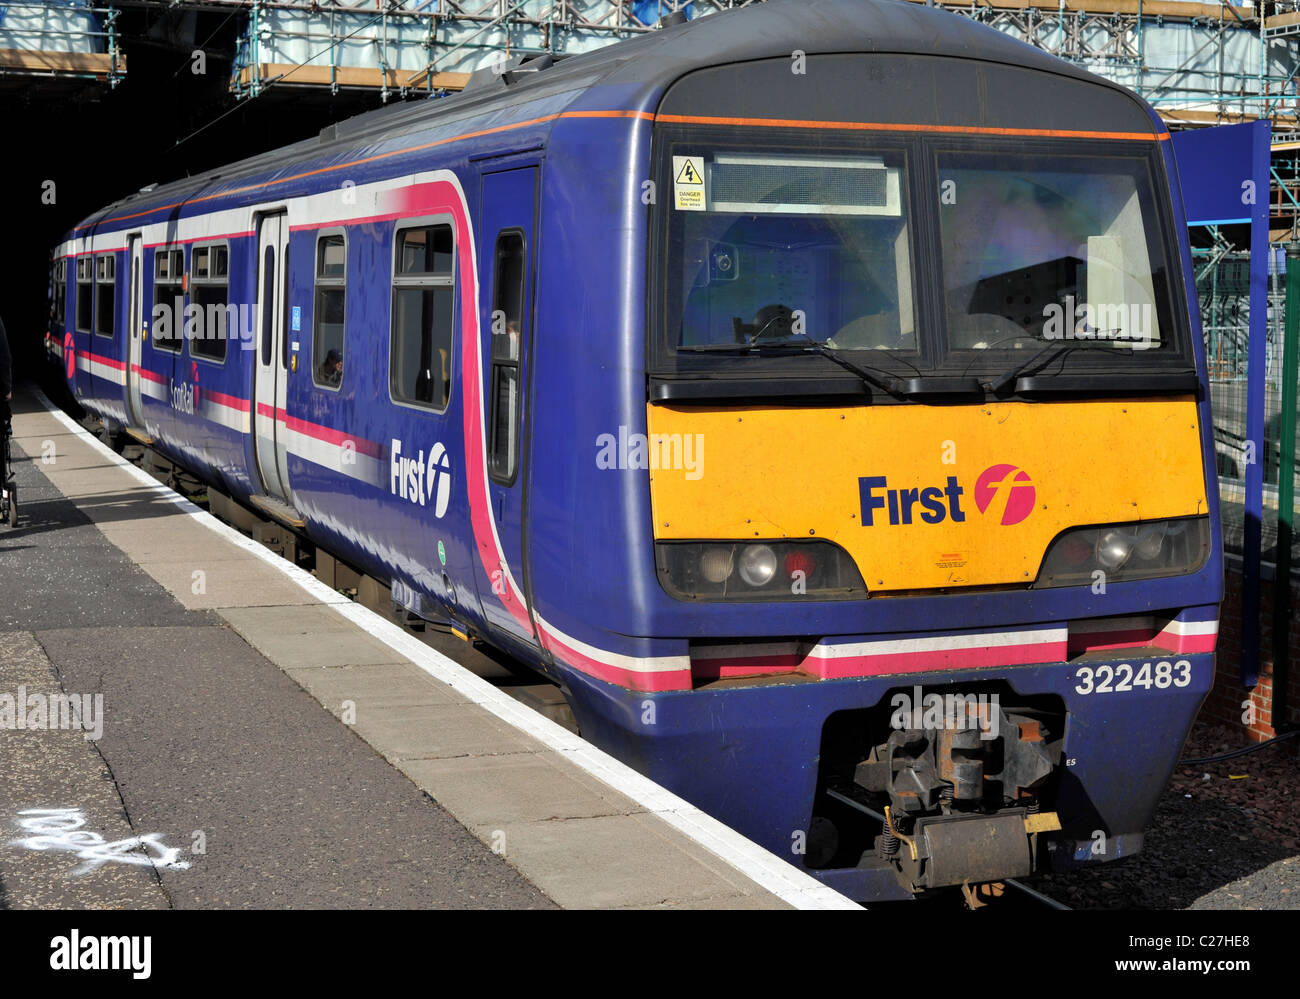 First Scotrail diesel Edinburgh Waverley Train Station  Scotrail train railway Scotland travel tourists tourism - Stock Image